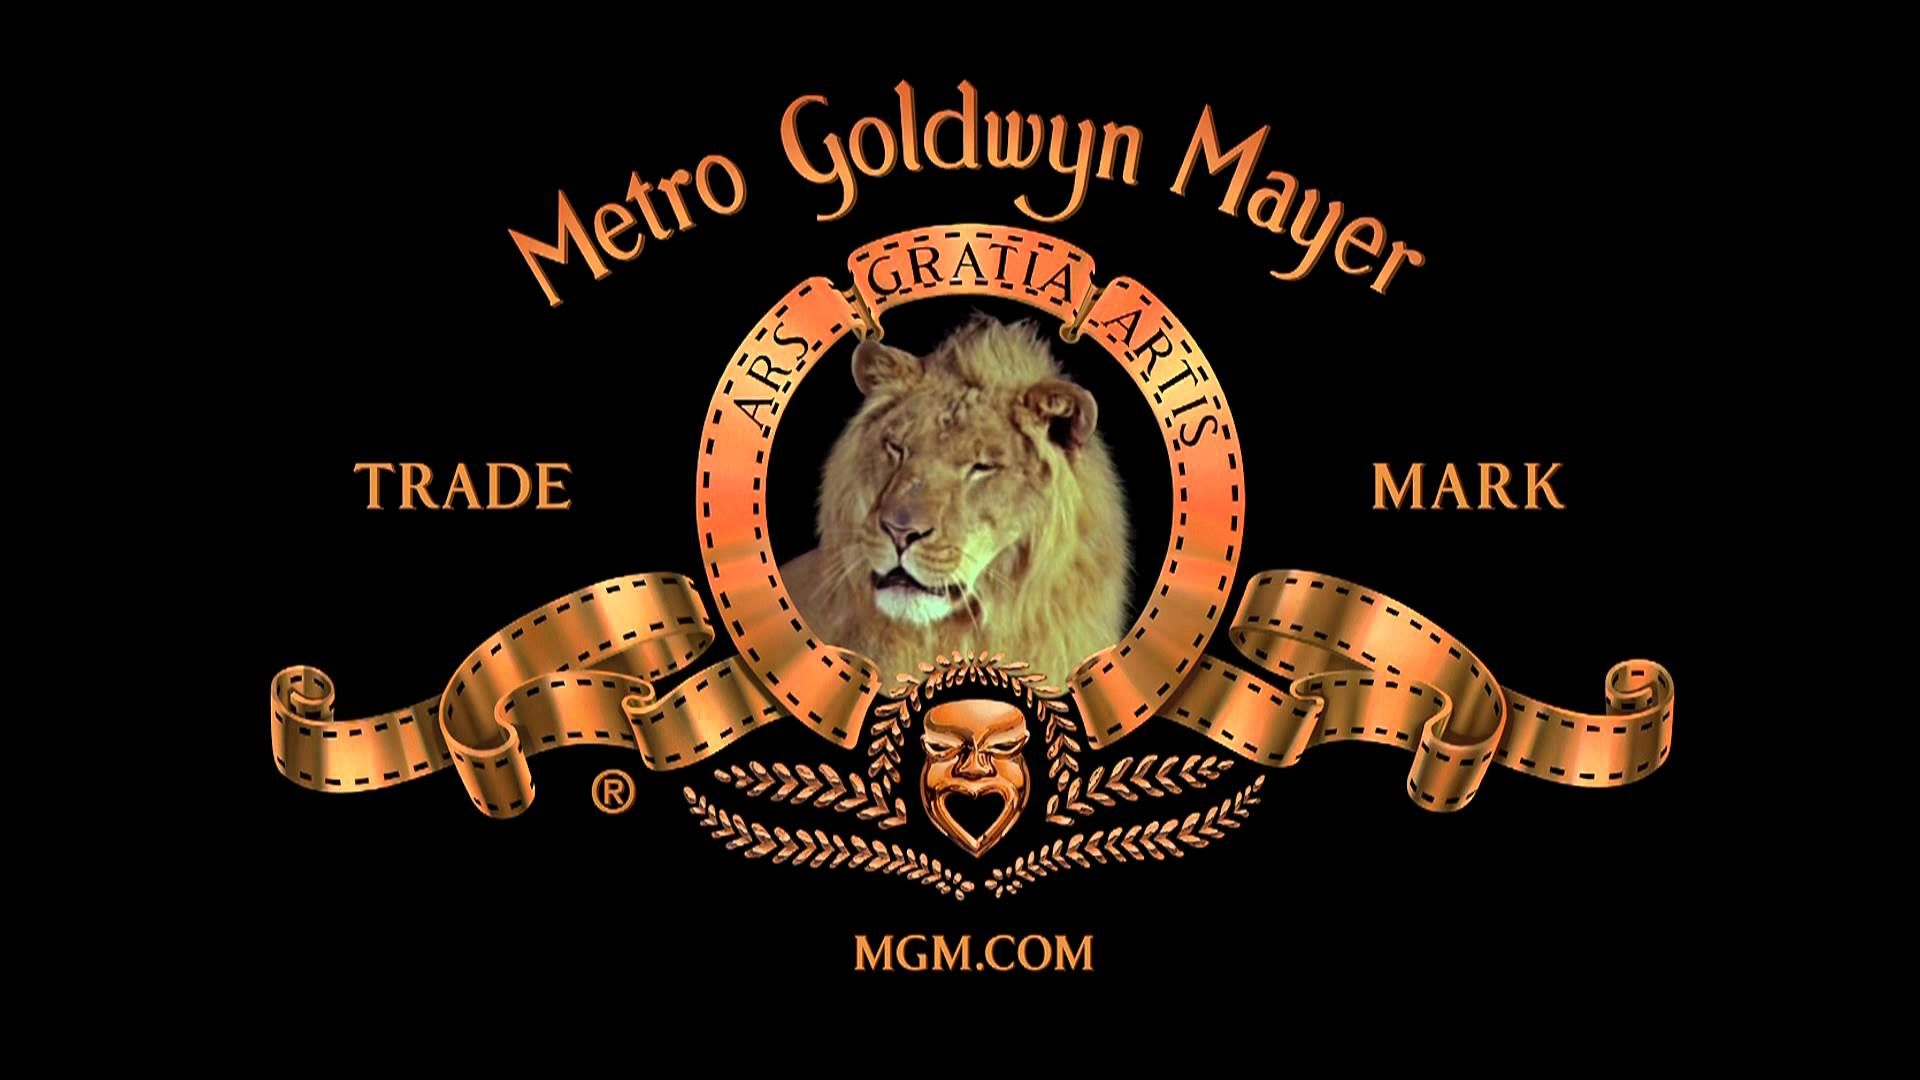 Metro-Goldwyn-Mayer | Founded 1924 by Marcus Loew in Beverly Hills, California